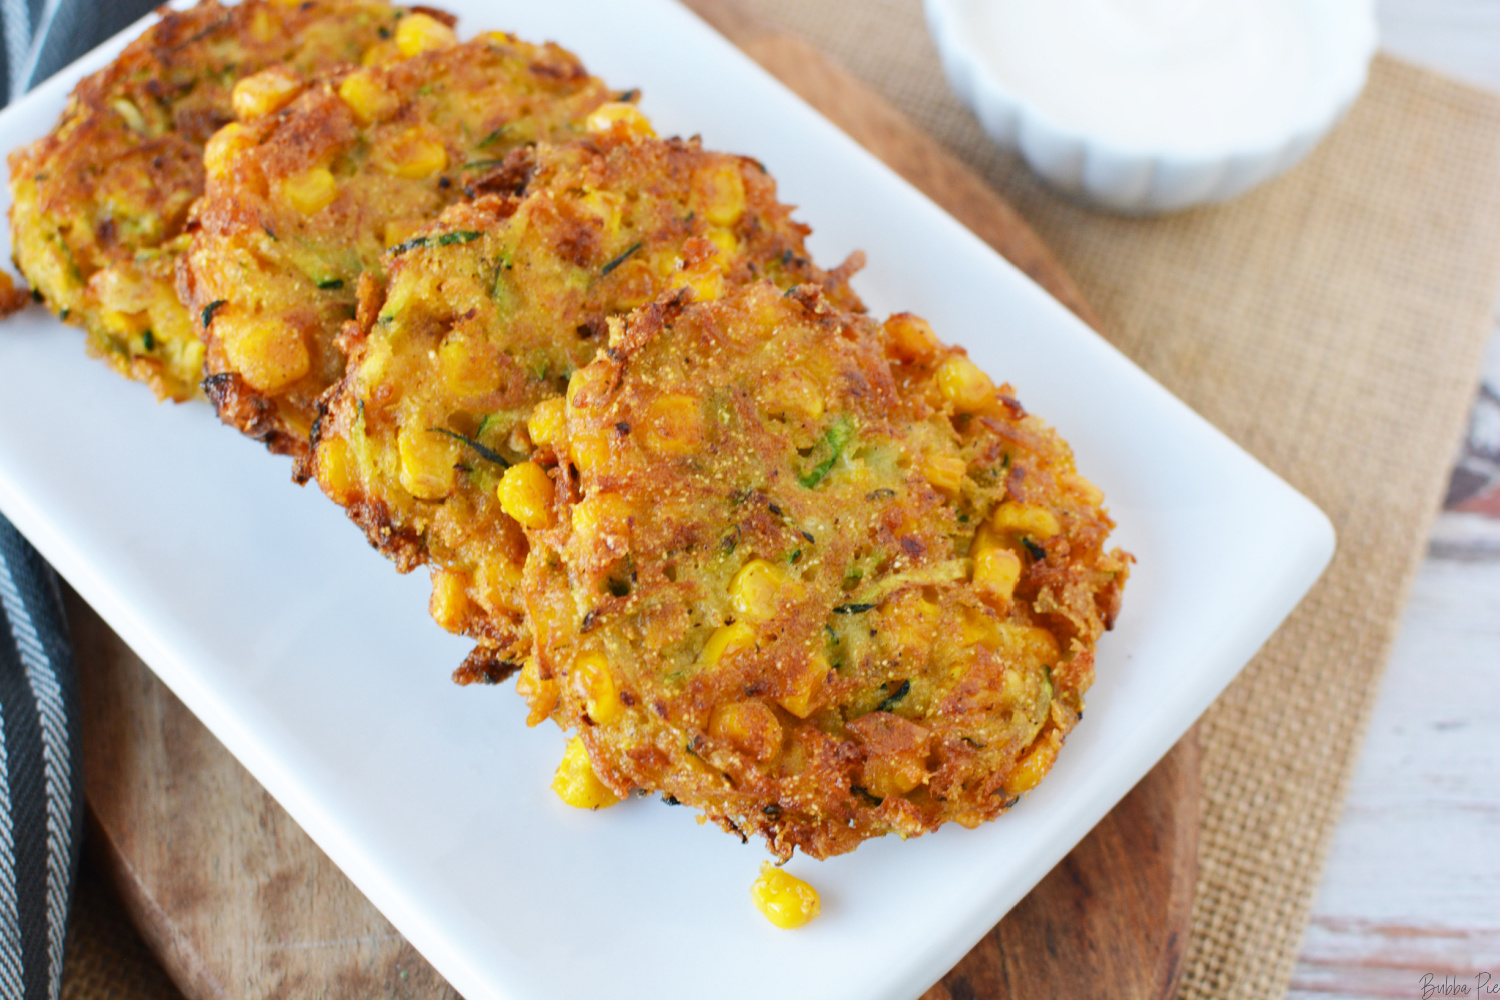 Zucchini Corn Fritters being served on a white plate.